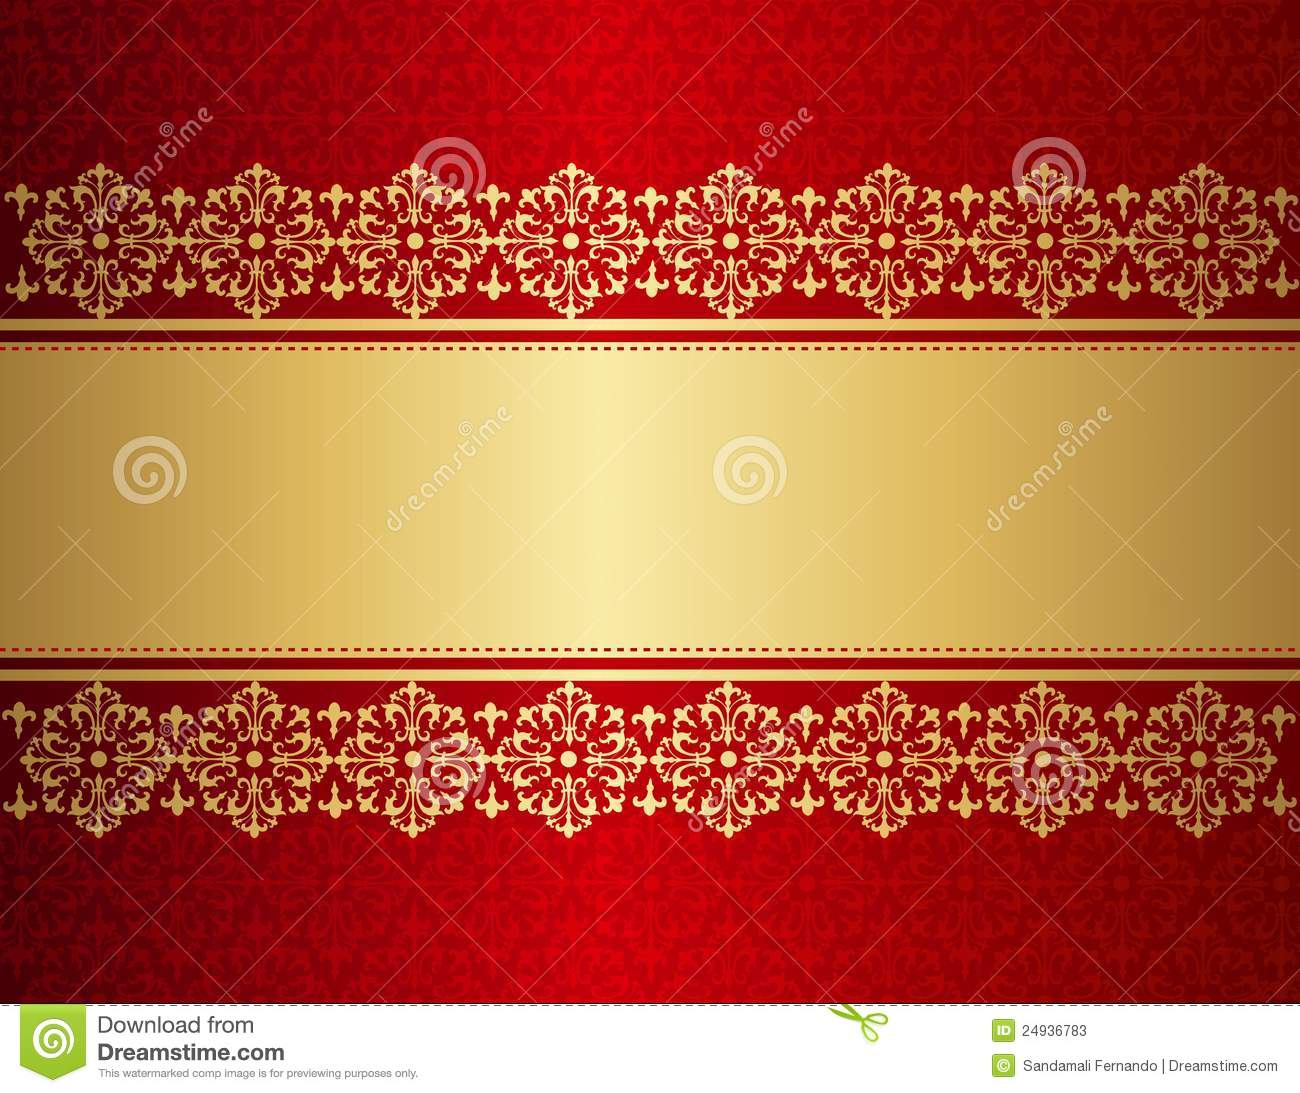 wedding invitation background - Wedding Invitation Background